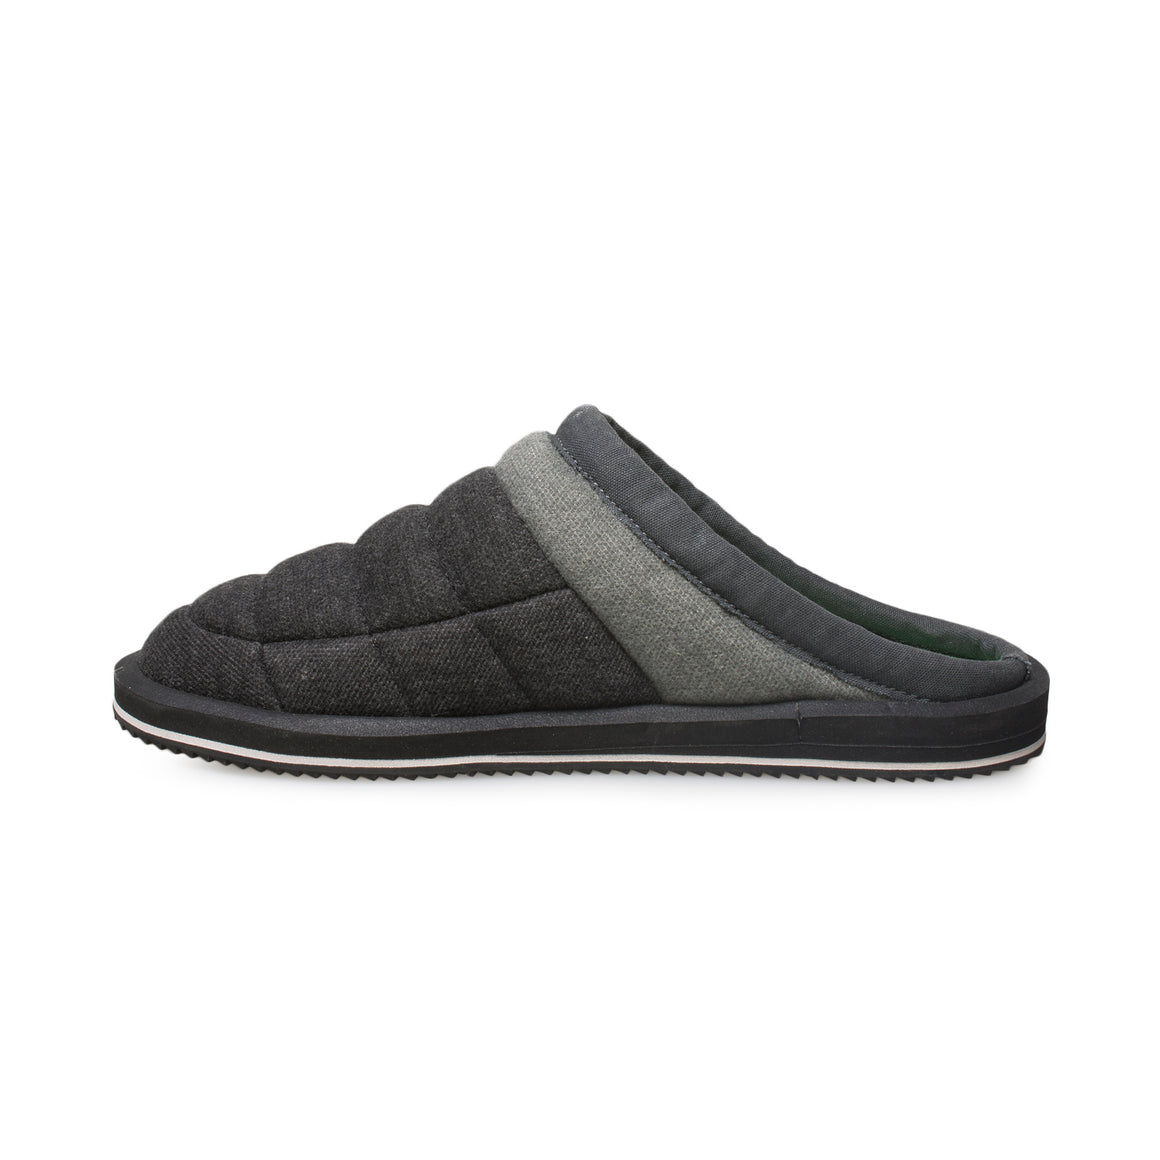 Sanuk Puff N Chill Low Black Loafers - Men's